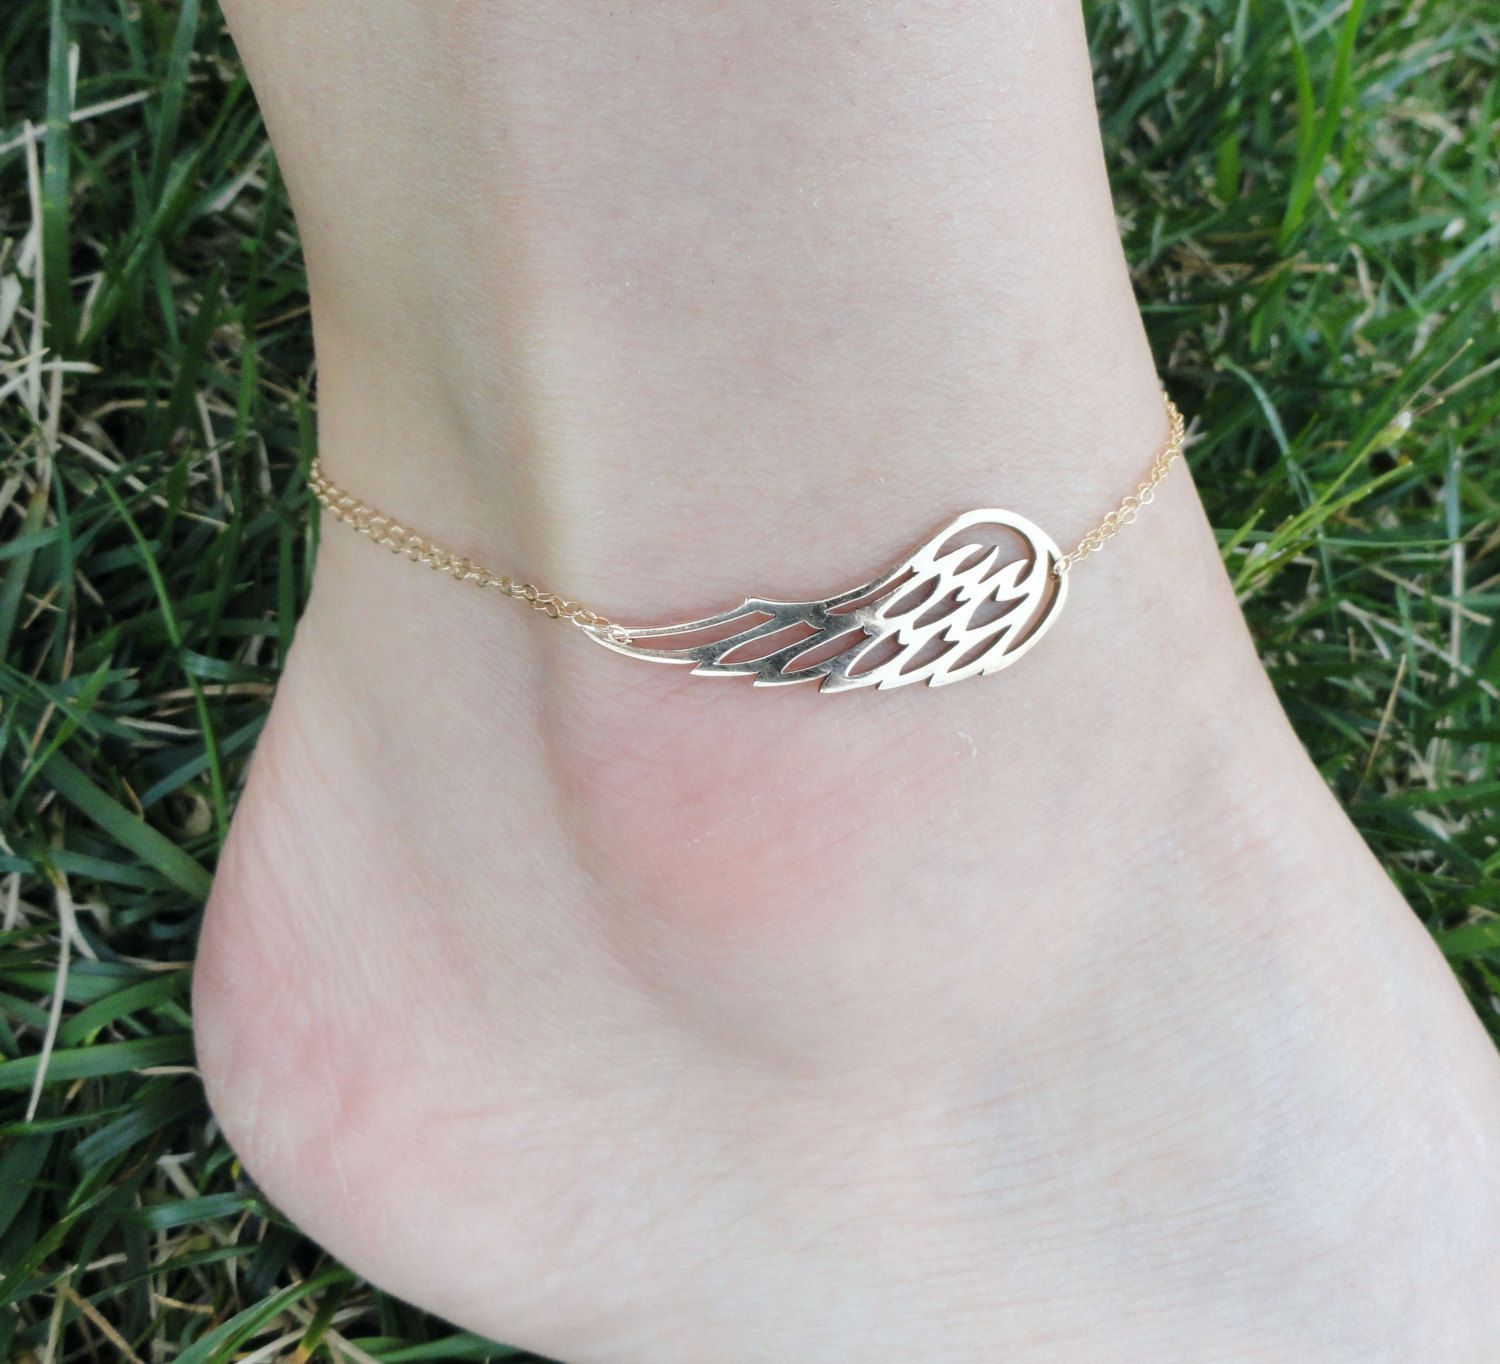 bracelets anklets gold can fine clear bracelet sparkly i white where diamond pin natural anklet buy ankle